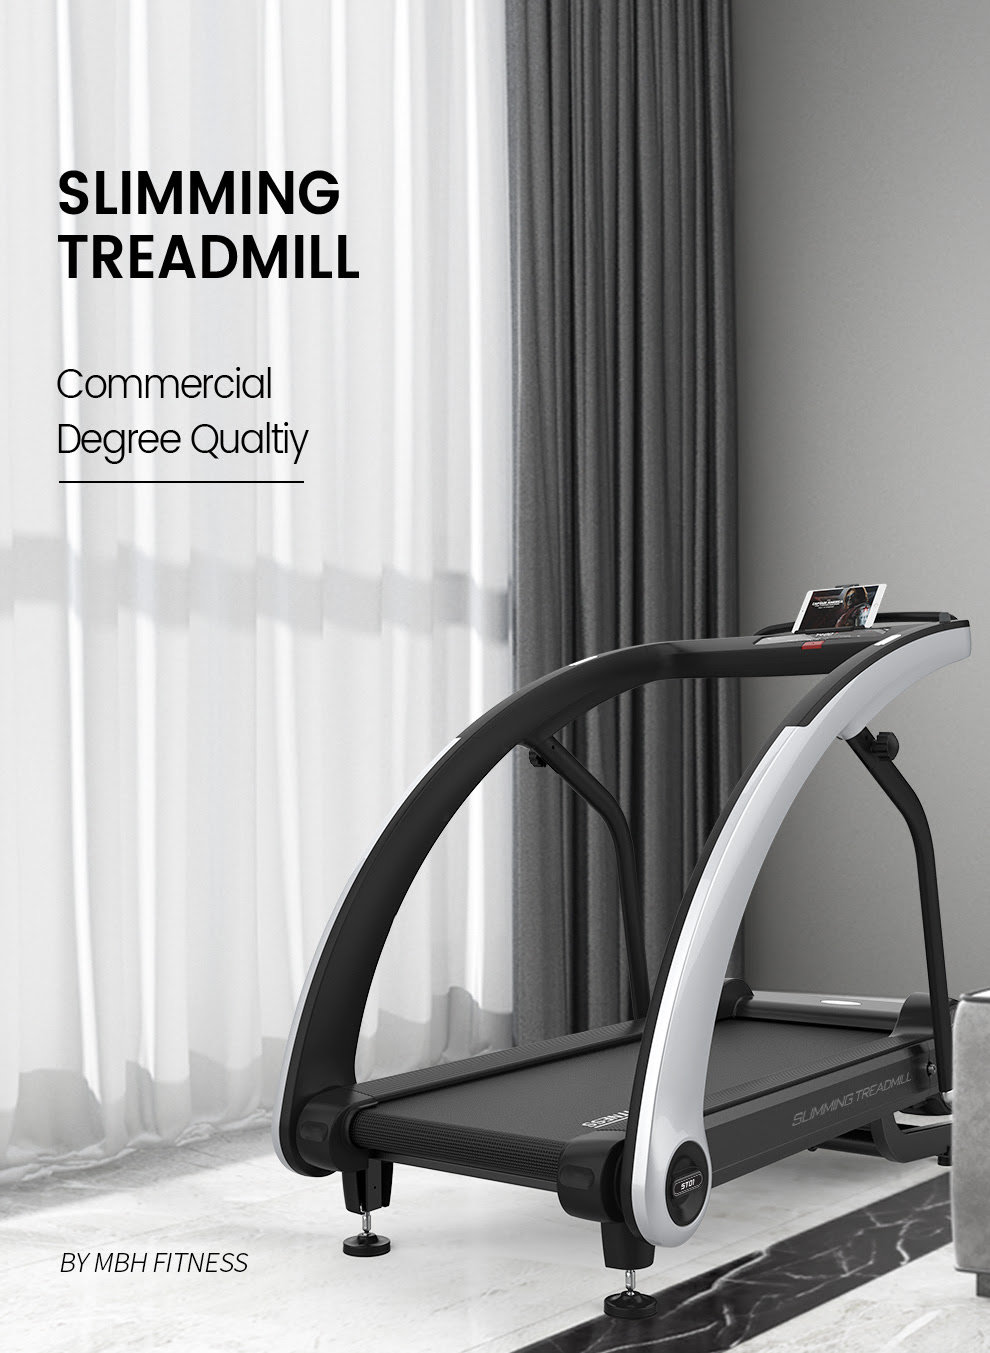 The MBF Fitness ST01A Treadmill - Commercial Quality